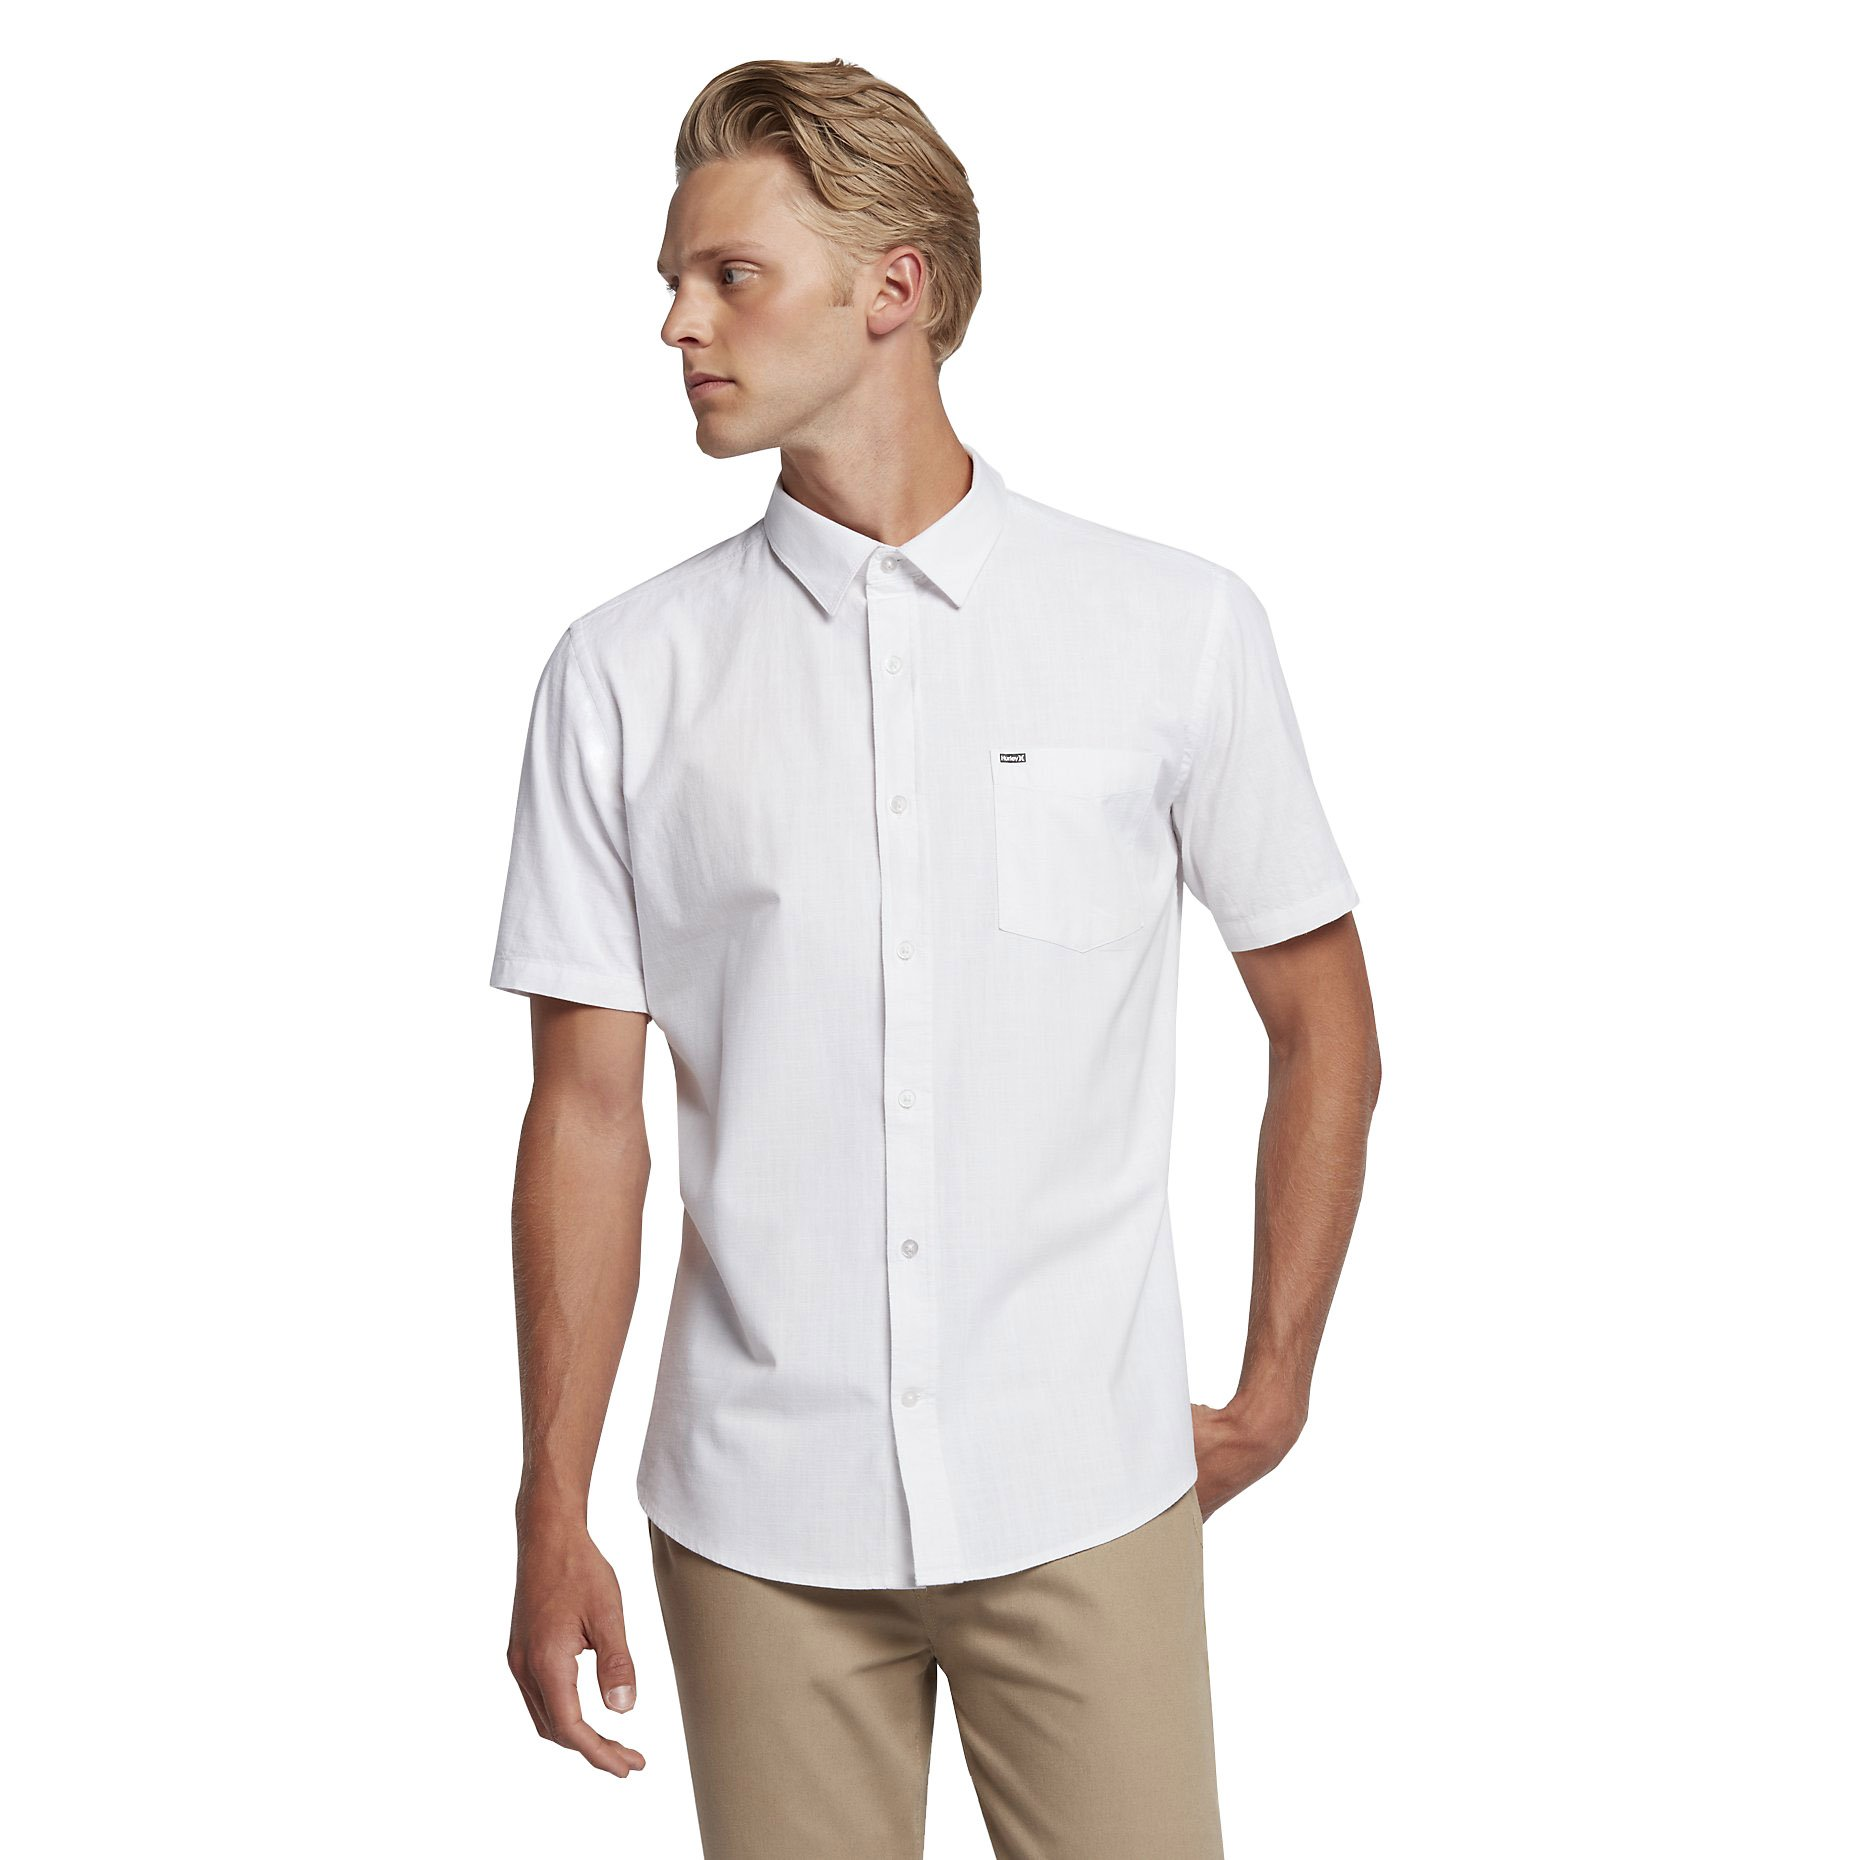 Hurley MVS0003780 Men's One And Only Short Sleeve Shirt, White - M